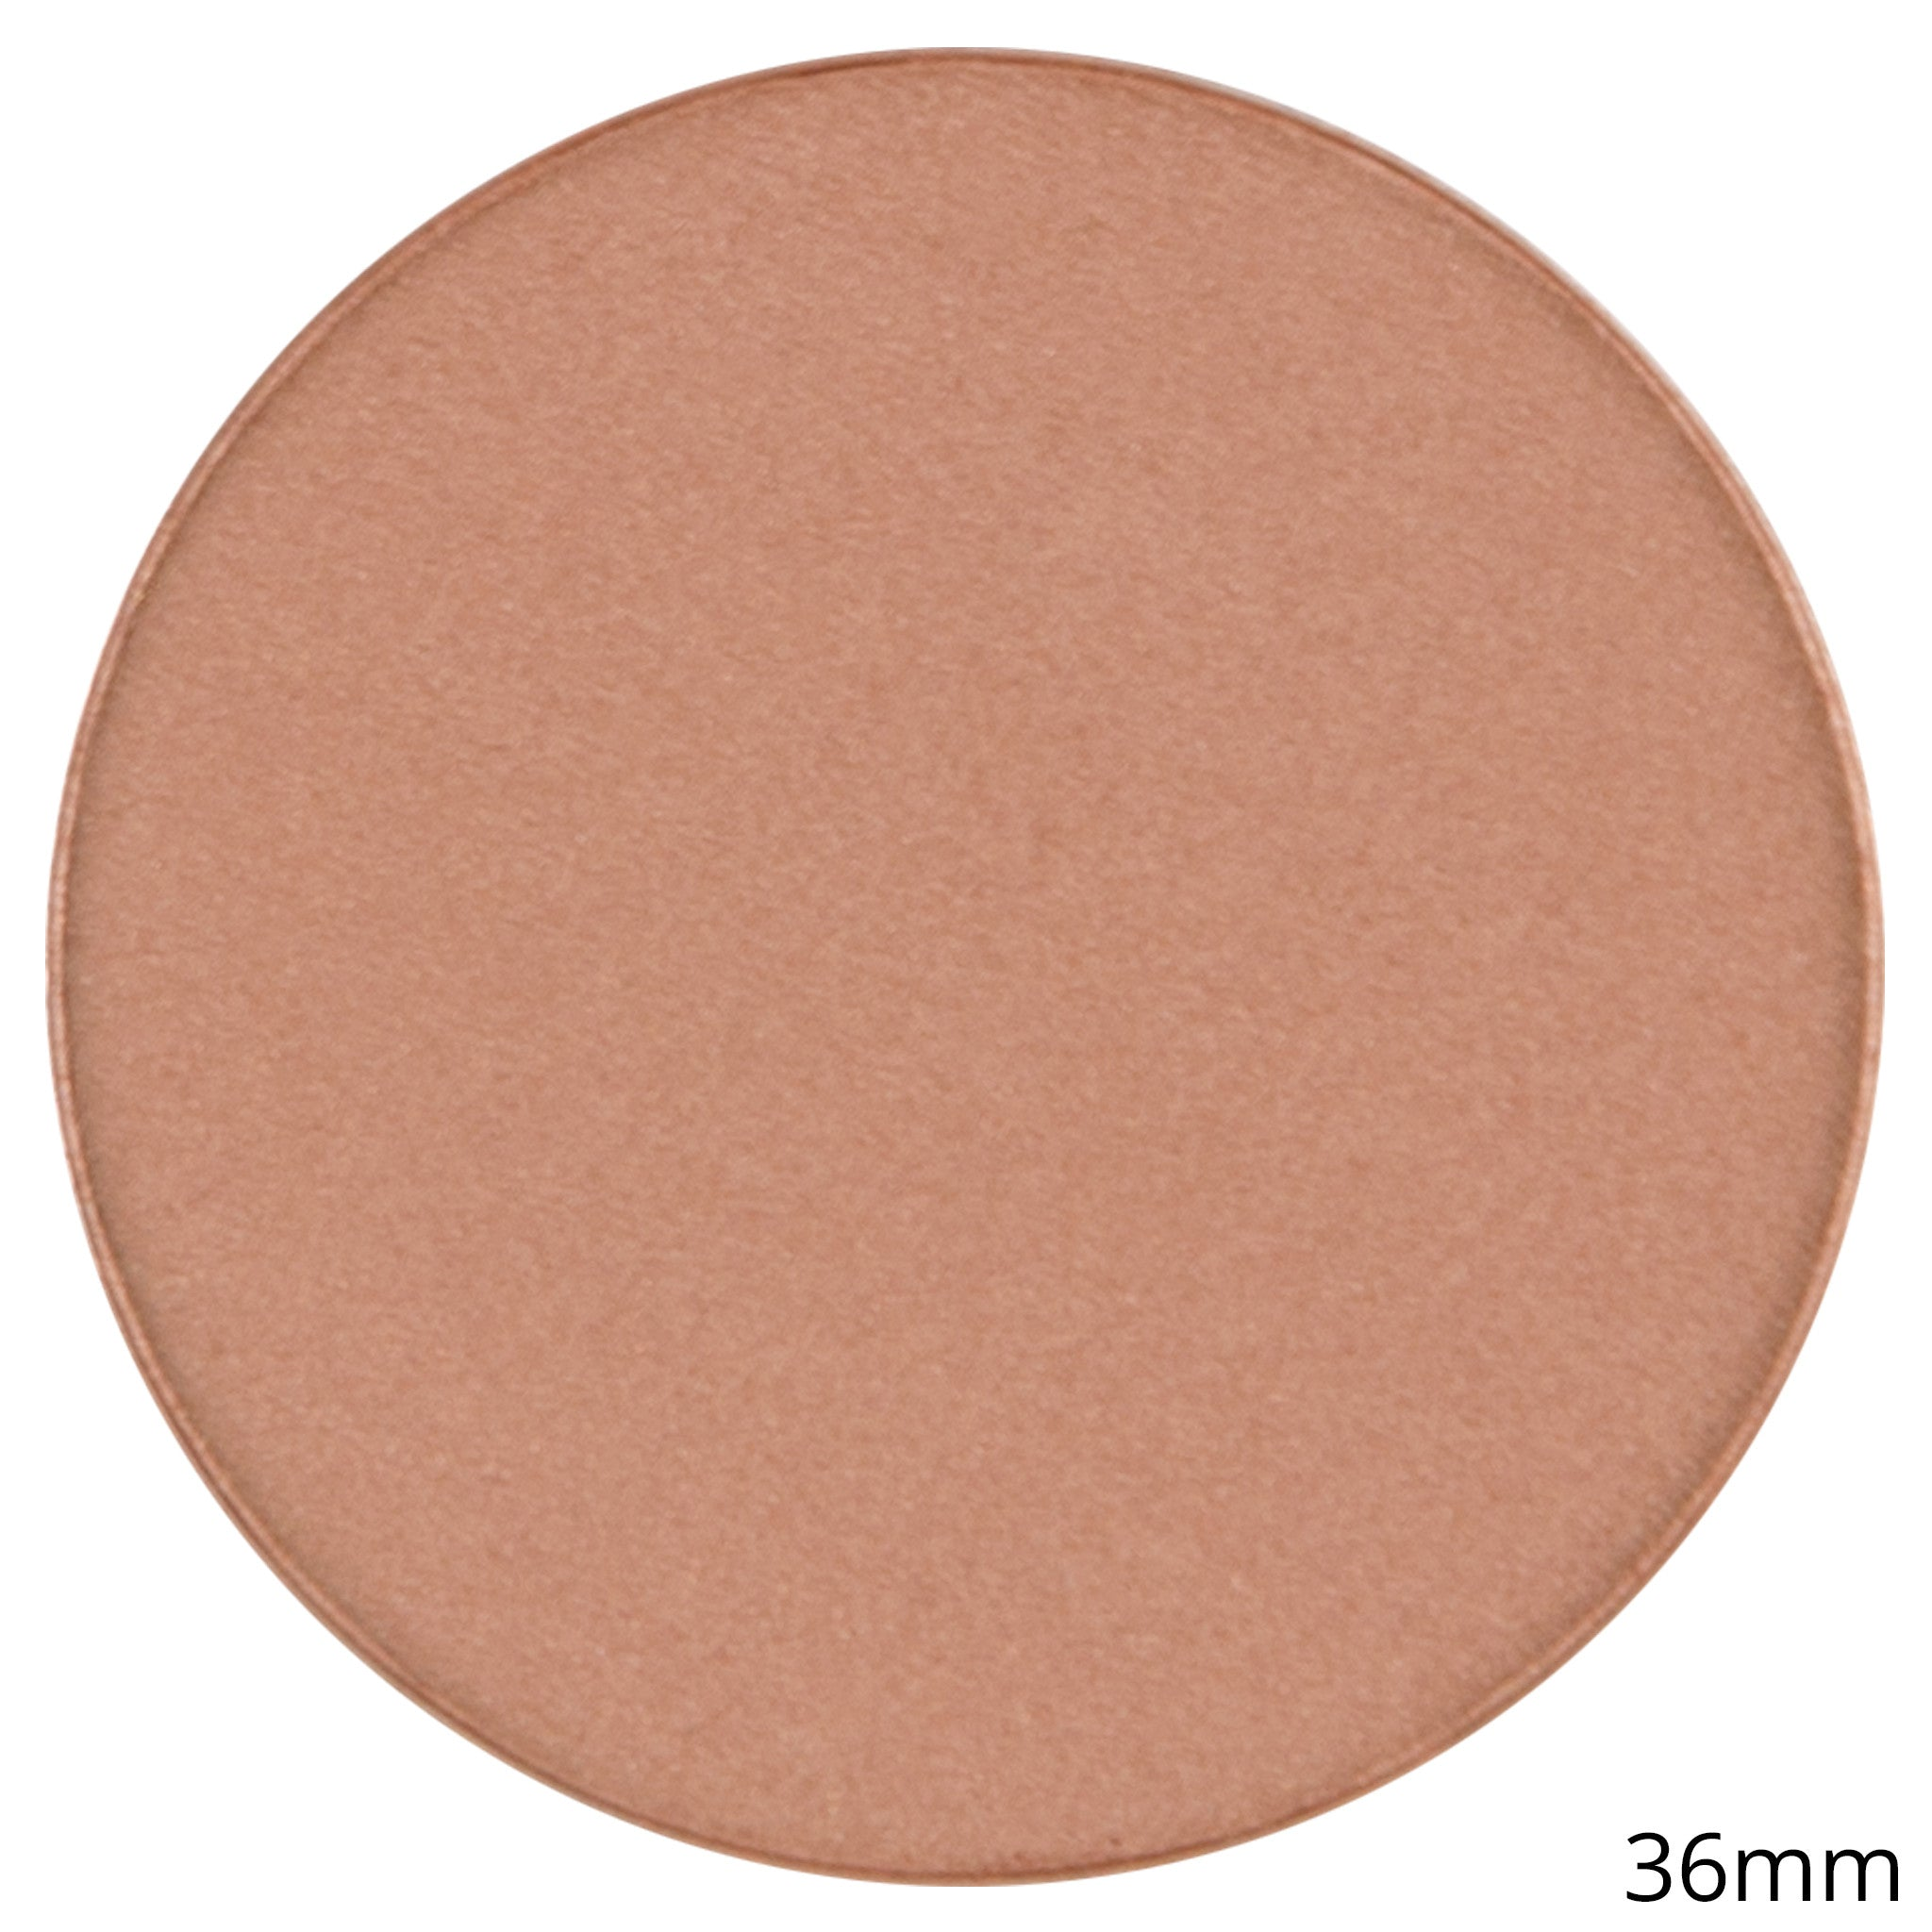 Single Satin Blush Shadow - Blush Pot - Nutmeg Frost- By Coastal Scents